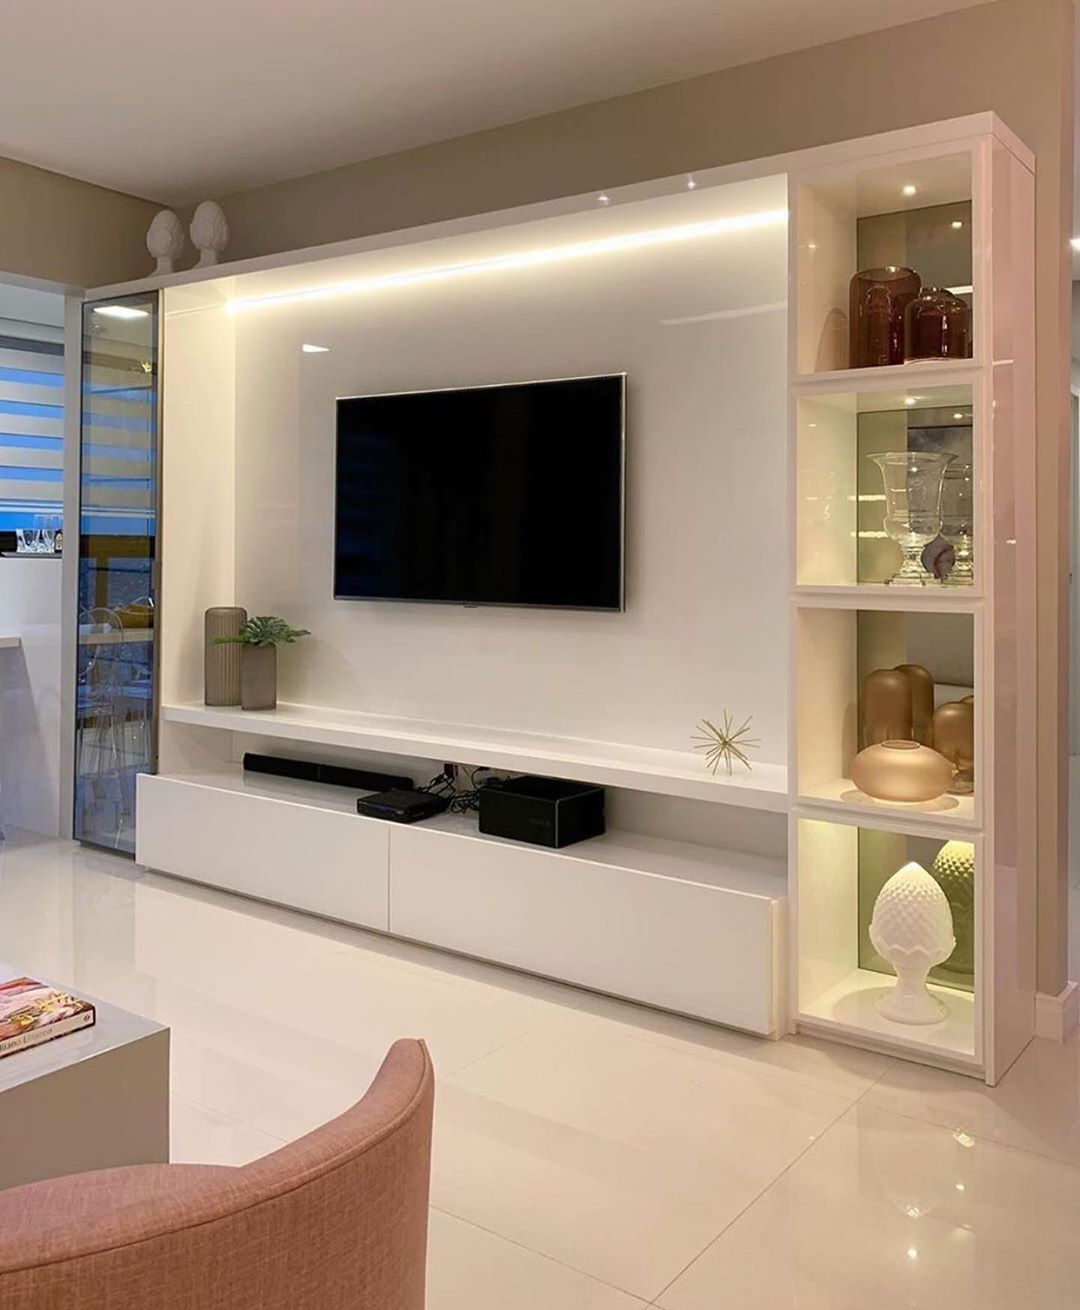 Pin Em Tv Rooms Tall Ceiling Living Room Living Room Tv Unit Designs Tv Room Design